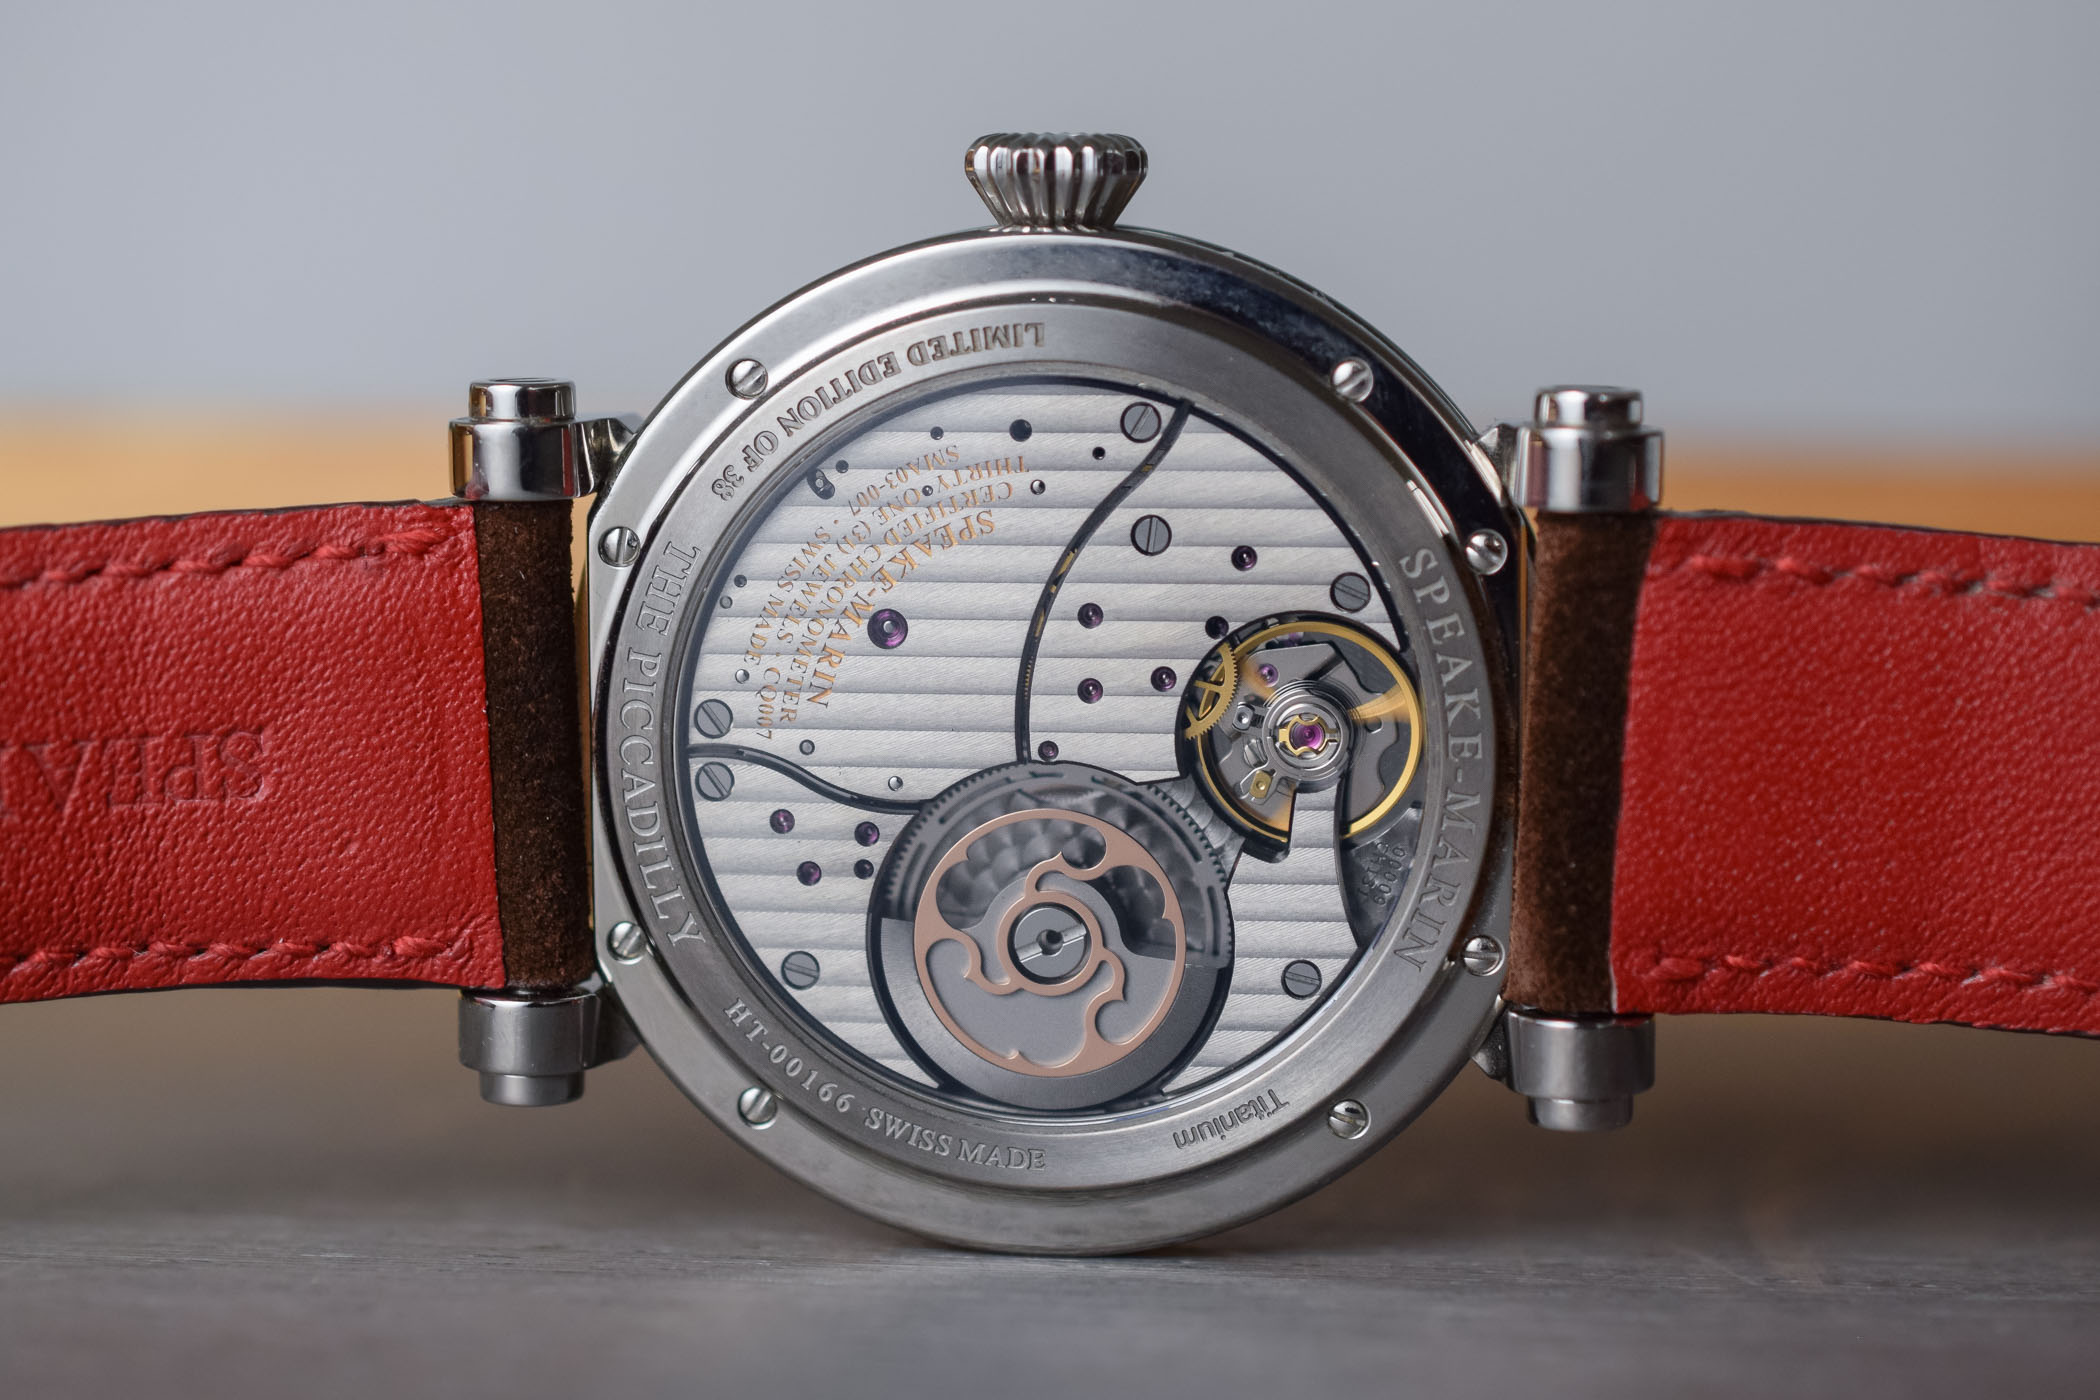 Speake Marin One & Two Academic